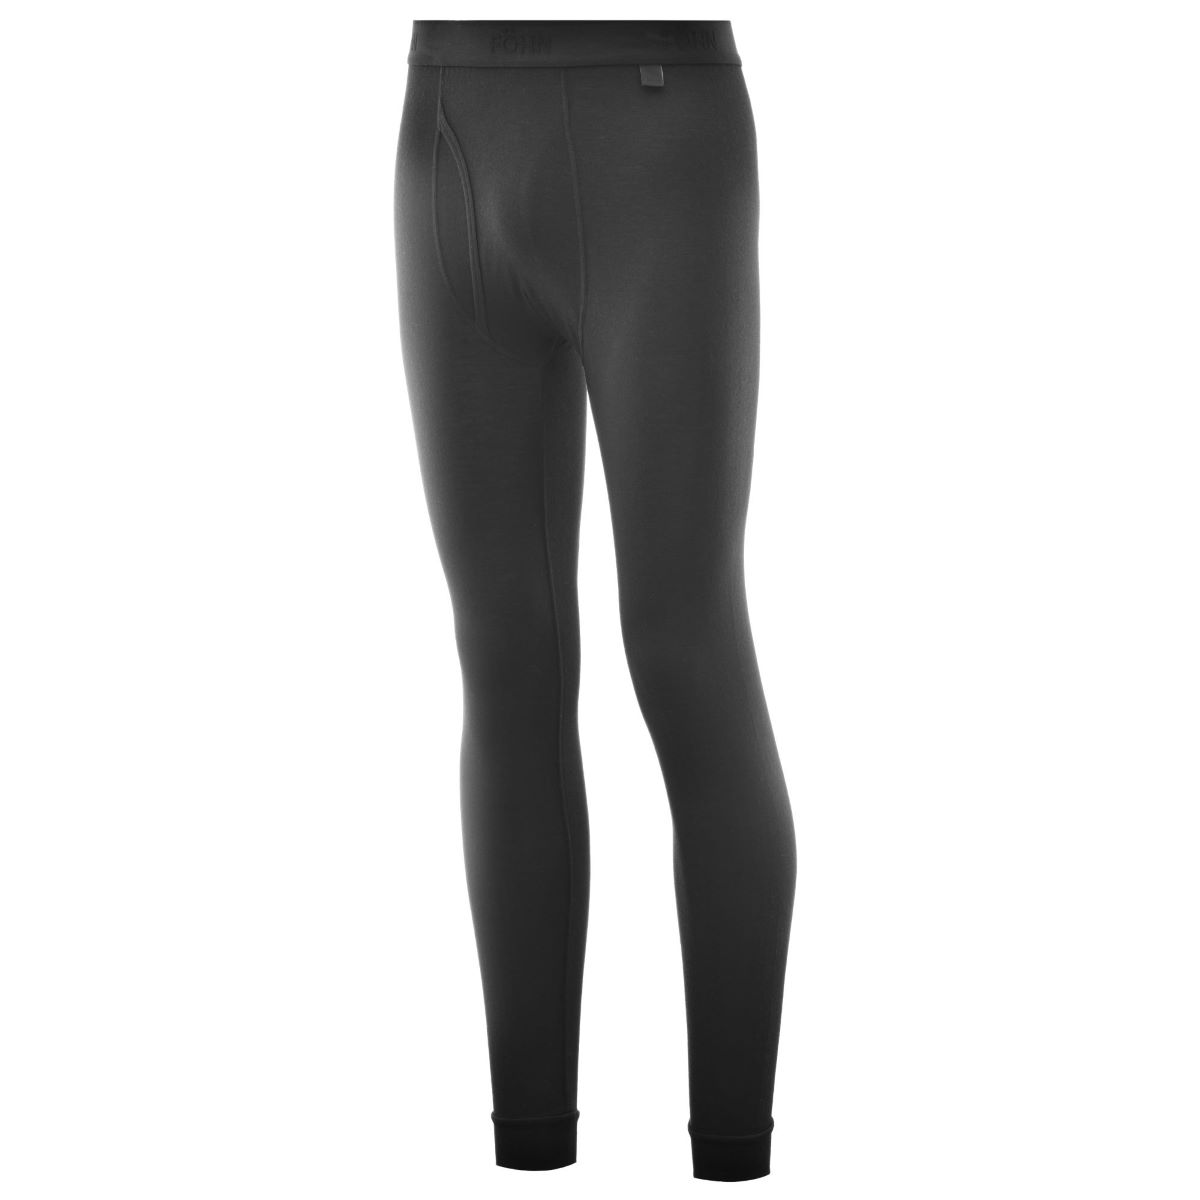 Fohn - Merino Leggings - Extra Large Noir | Vêtements de corps